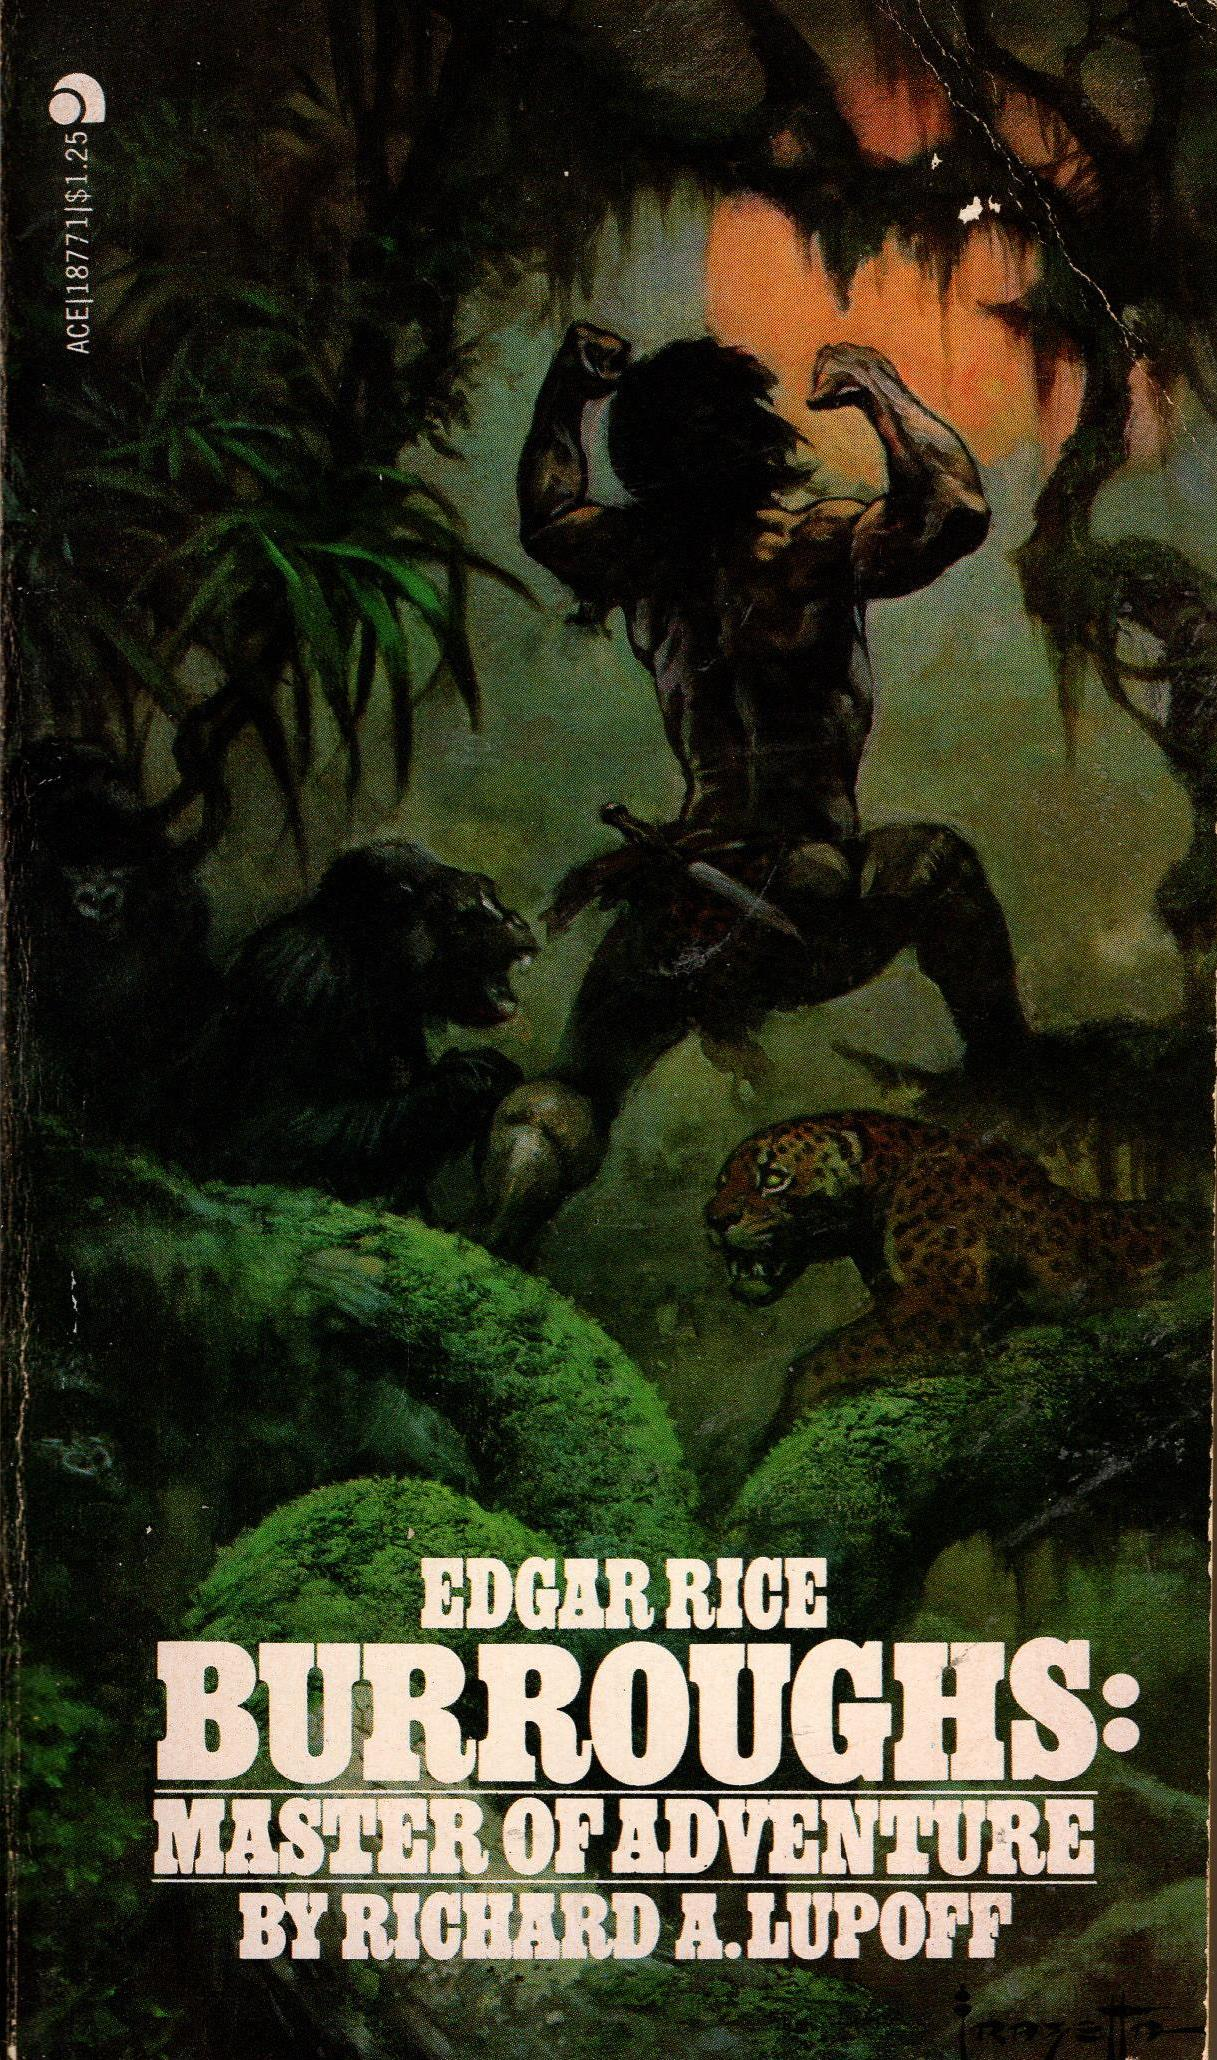 Image for EDGAR RICE BURROUGHS: MASTER OF ADVENTURE